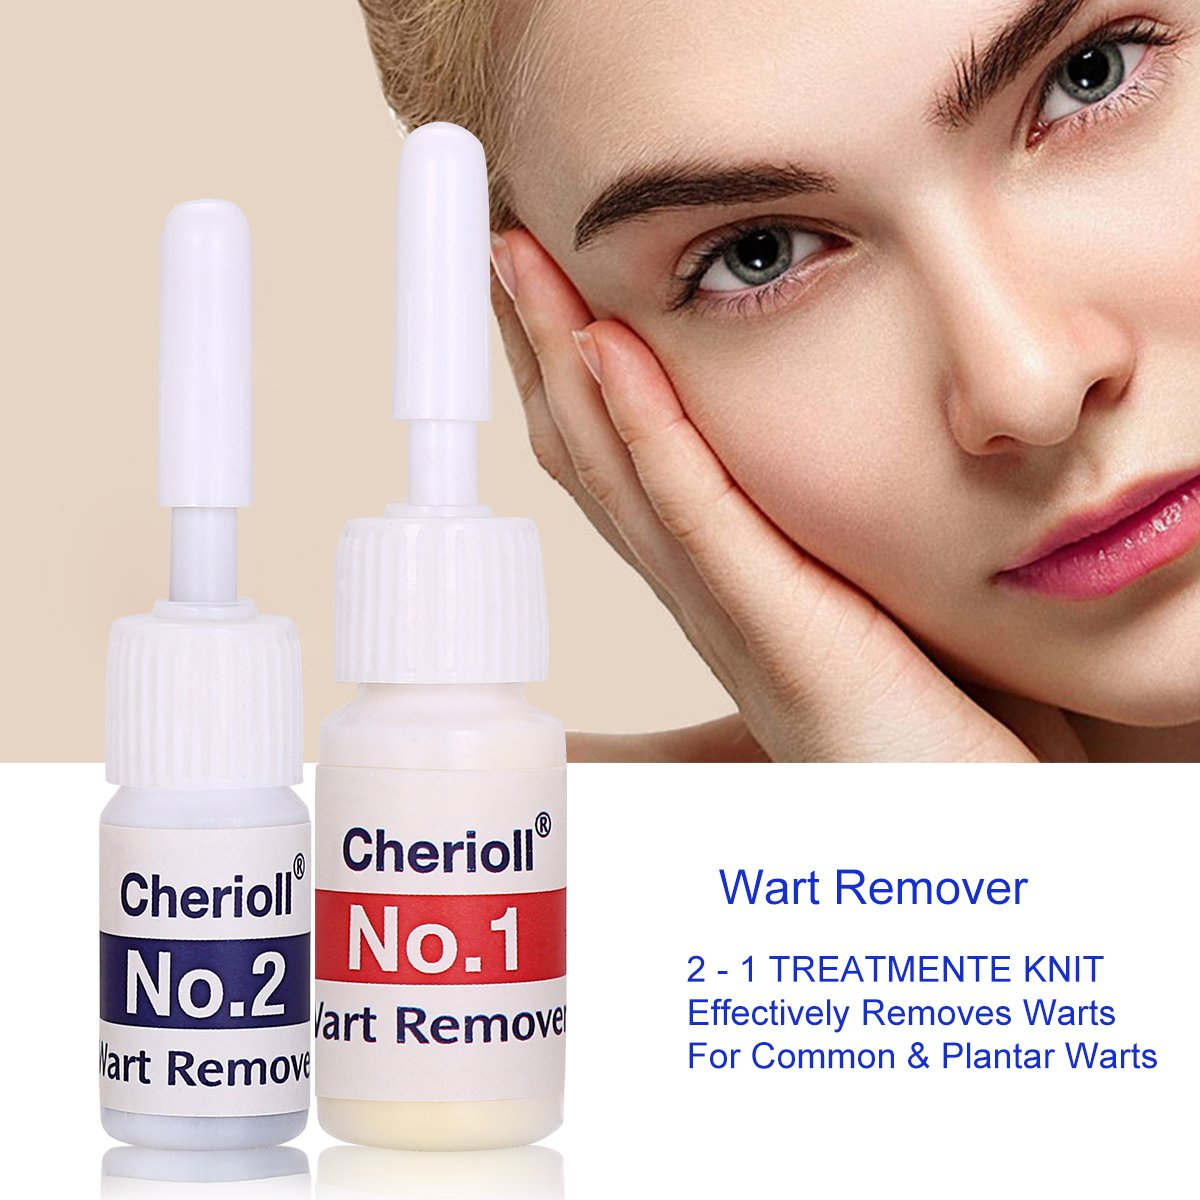 Wart Removal Penetrates And Removes Common Plantar Warts Zapper Circuit Pictures Images Photos Photobucket System 2 In 1 Treatment Kit Health Personal Care